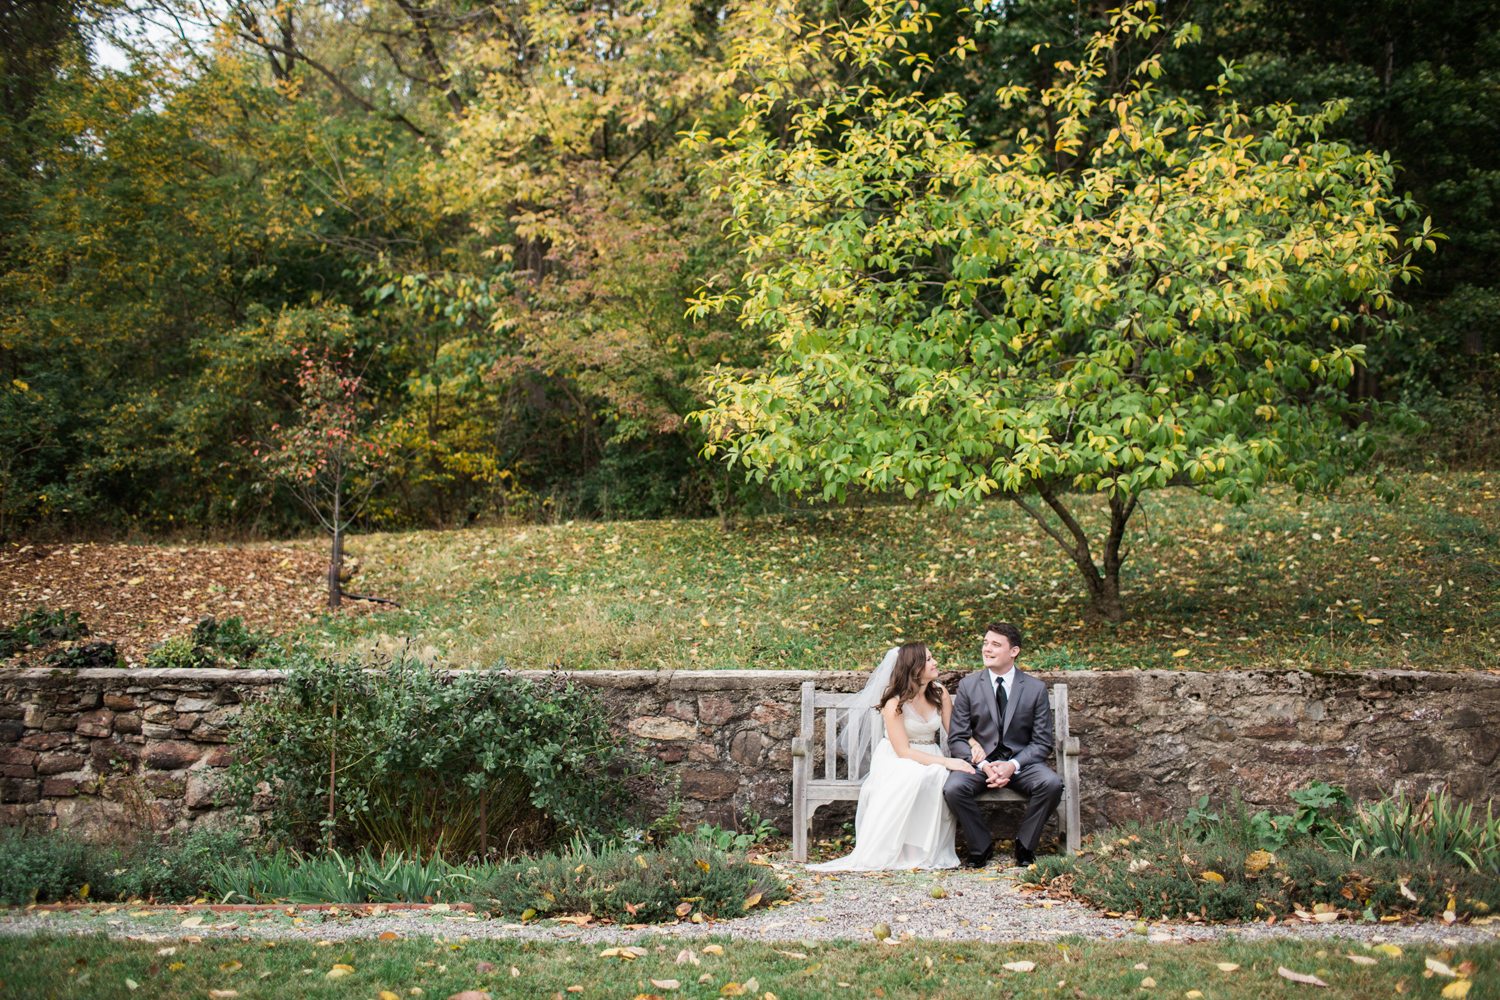 Siousca_Photography_Philadelphia_wedding_photographer_the_washington_historic_yellow_springs_wedding_20.jpg